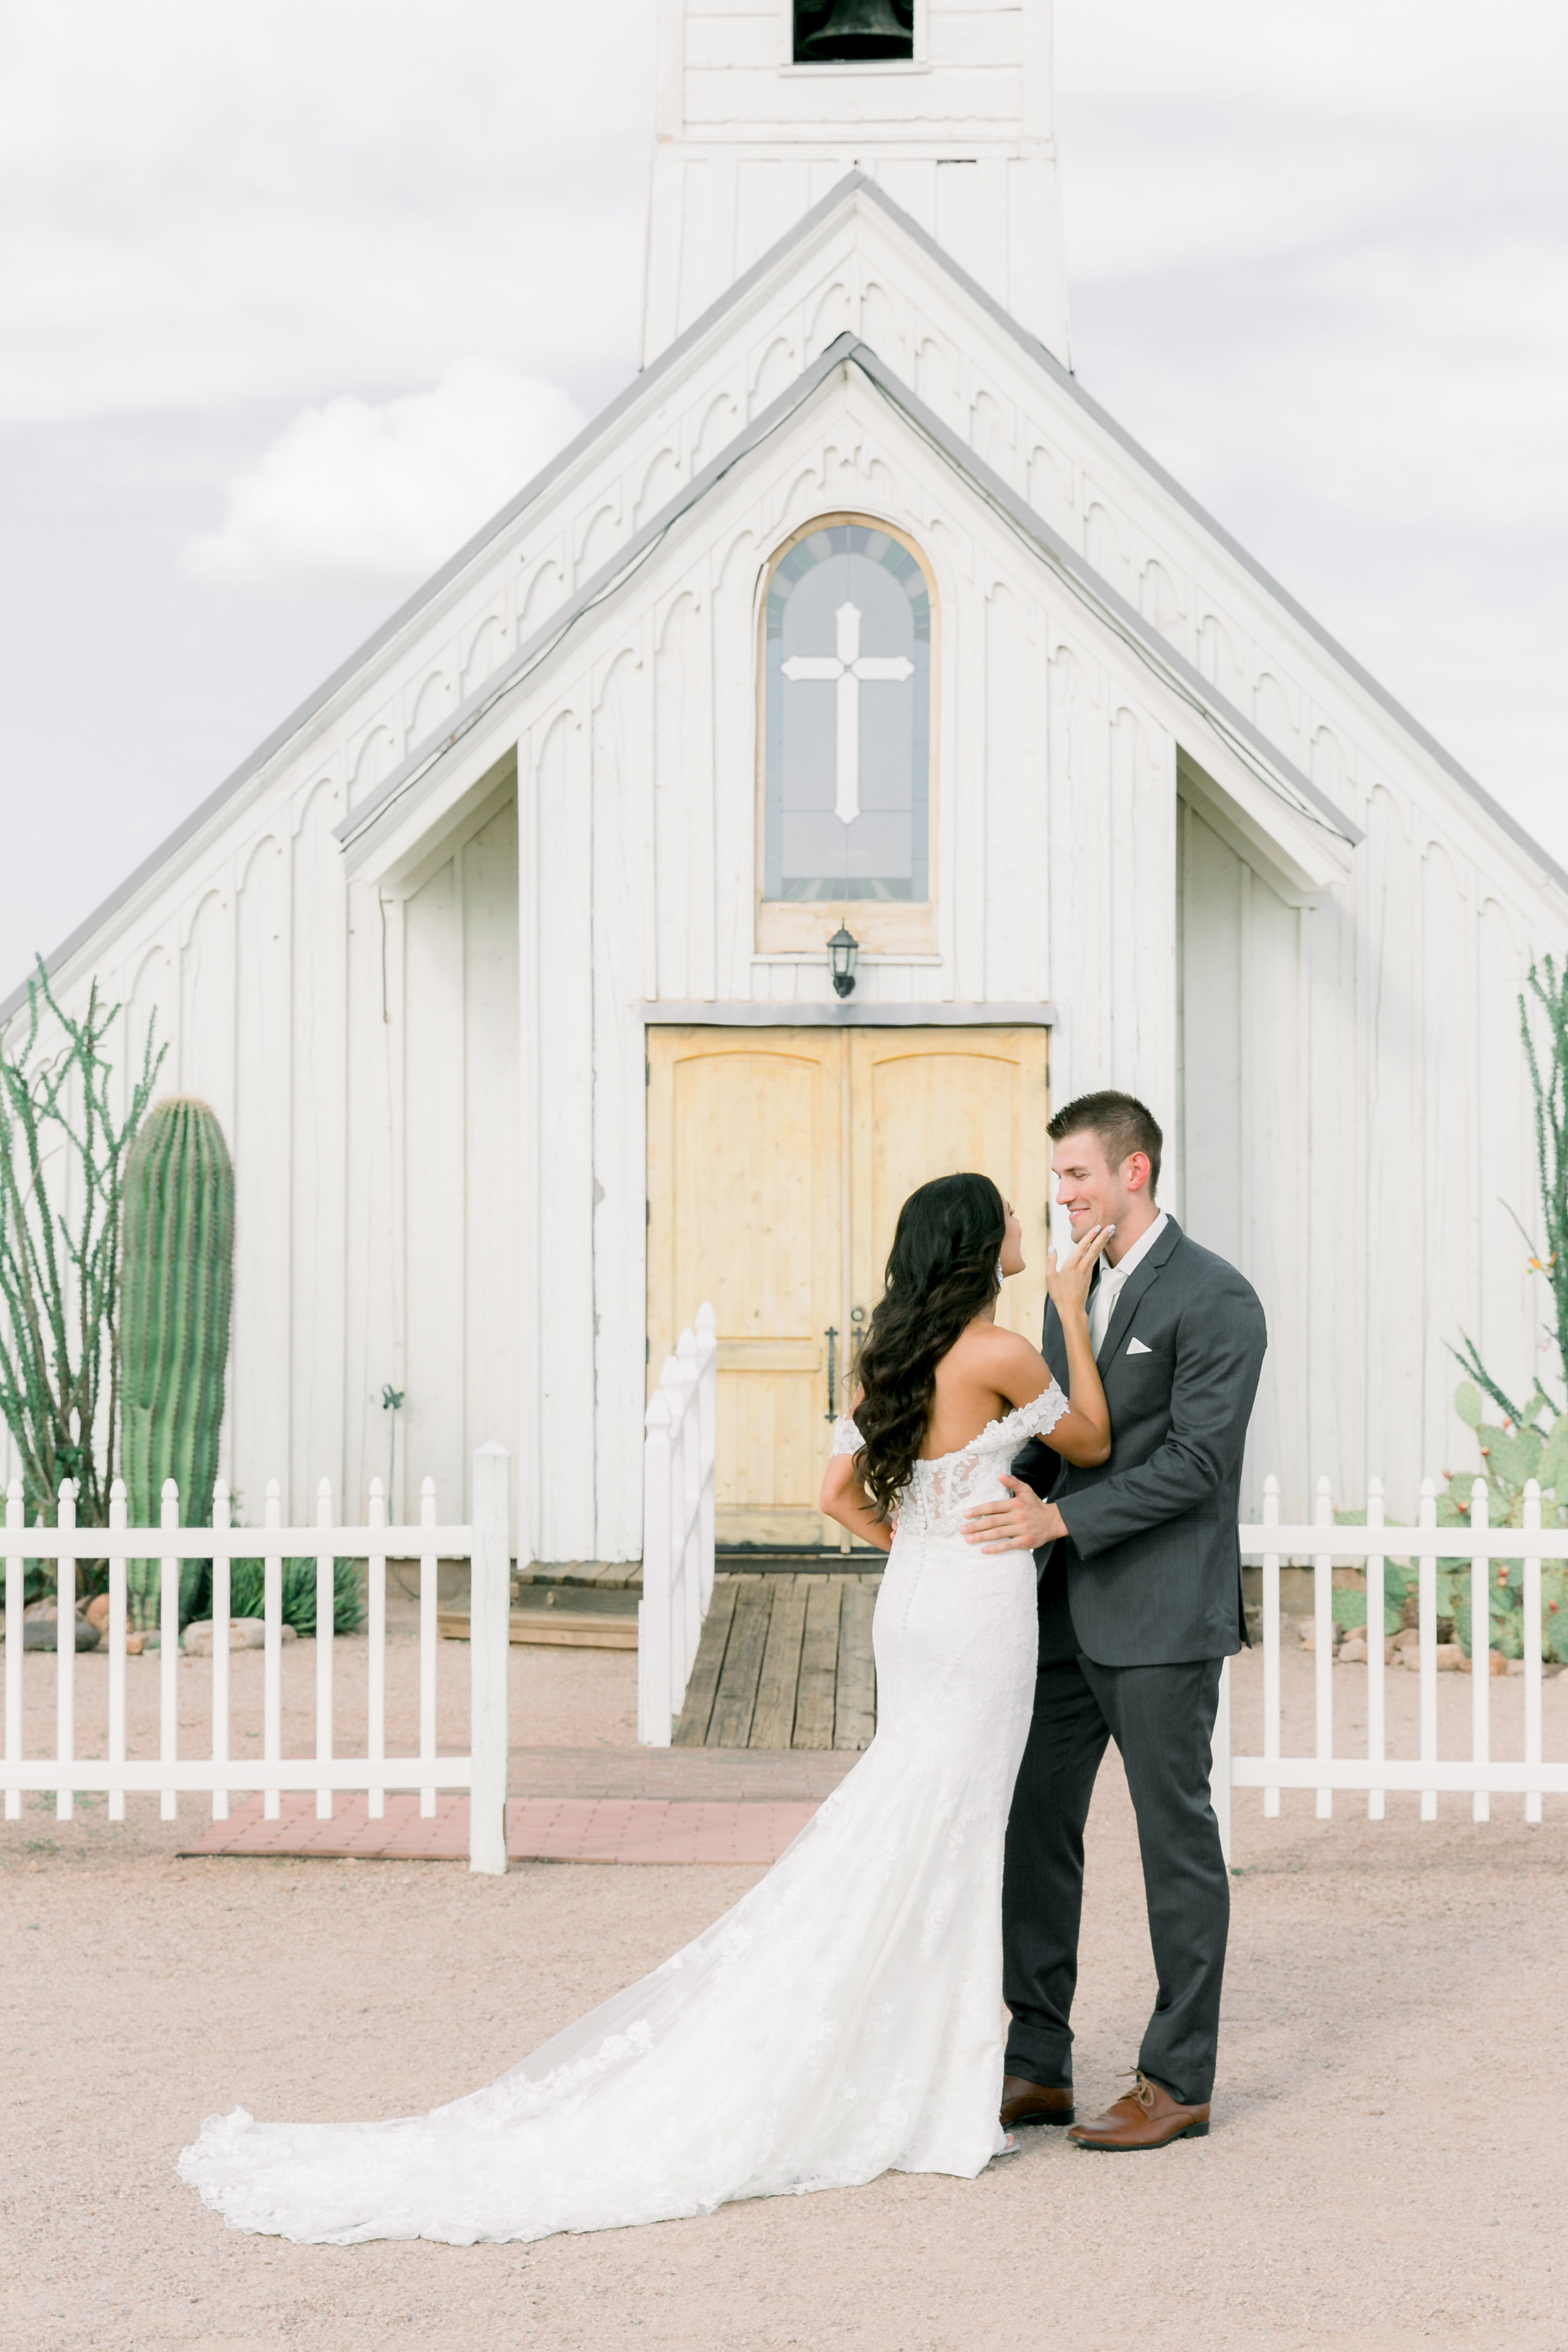 Karlie Colleen Photography - Arizona Wedding - The Paseo Venue - Jackie & Ryan -102